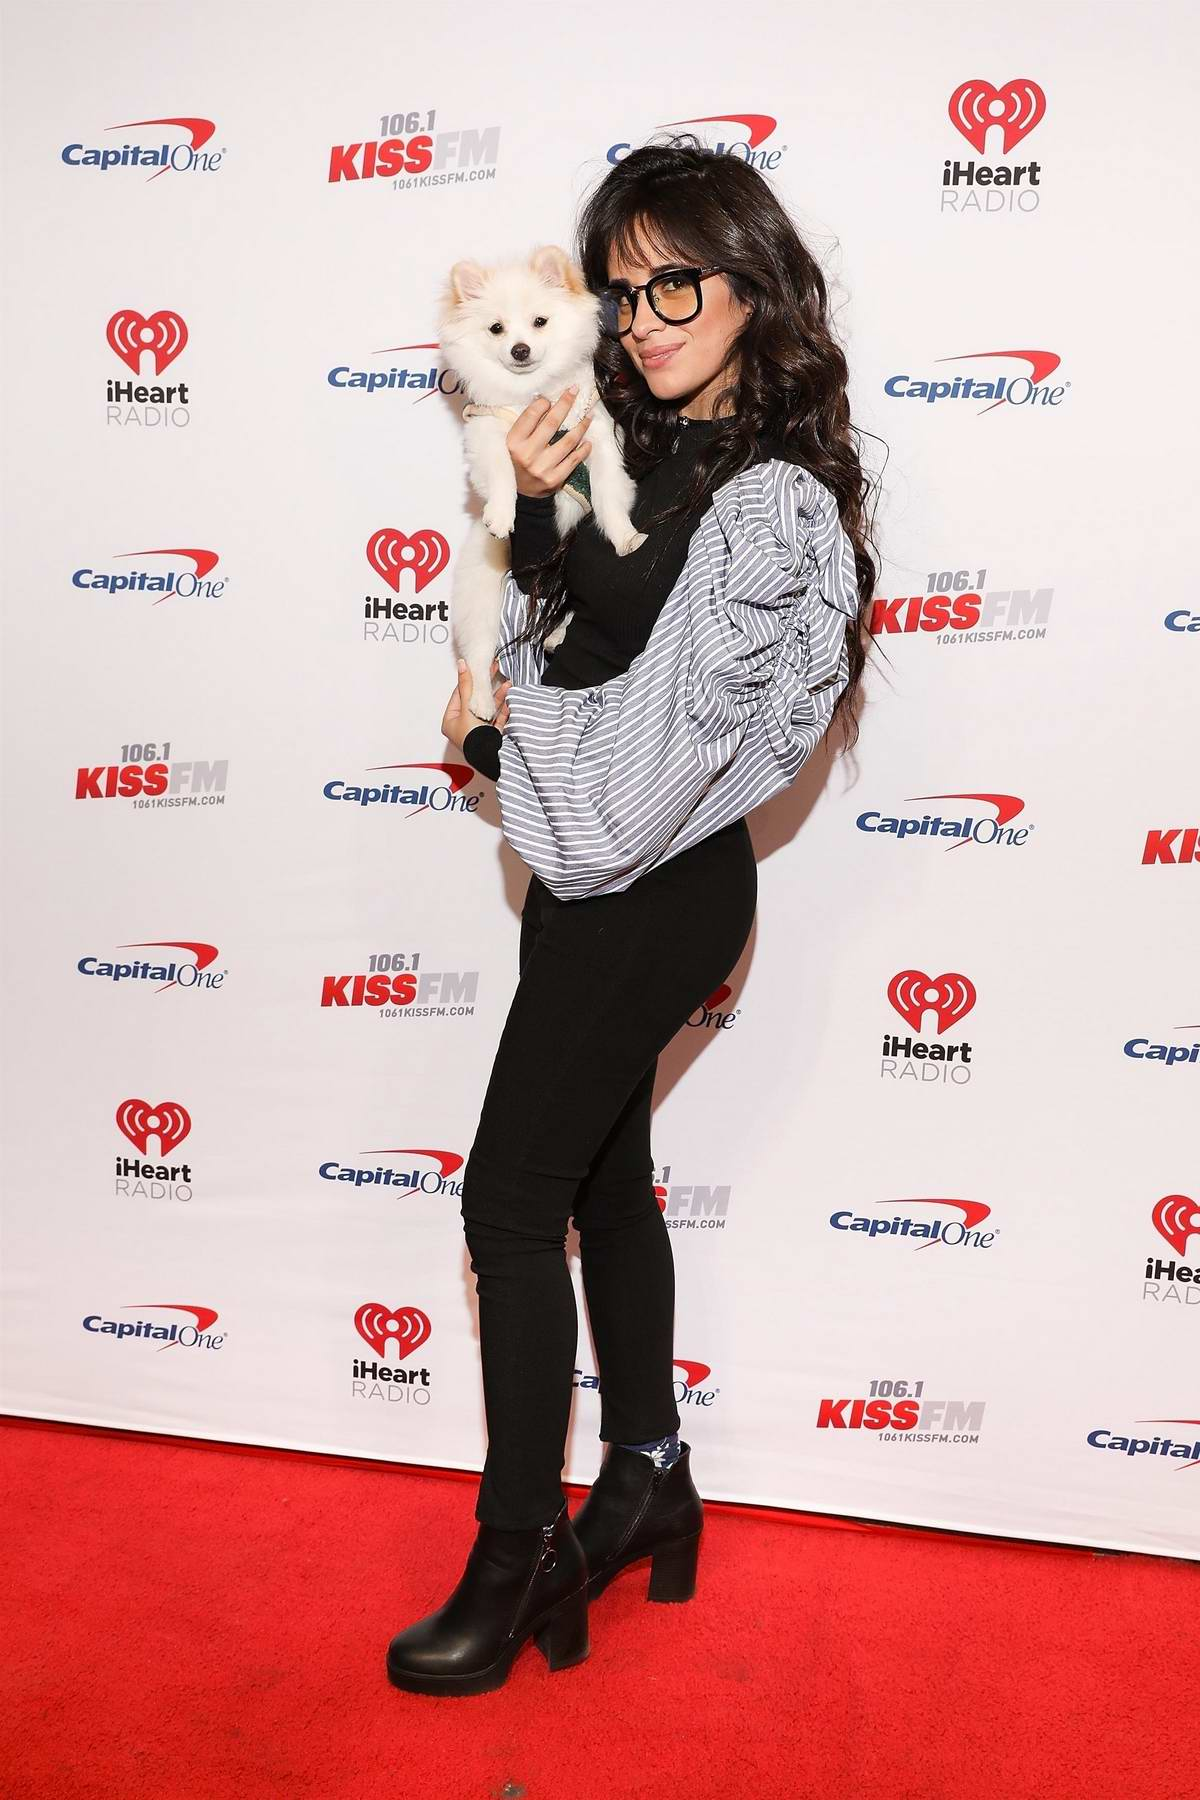 Camila Cabello attends the 106.1 KISS FM's iHeartRadio Jingle Ball at Dickies Arena in Dallas, Texas